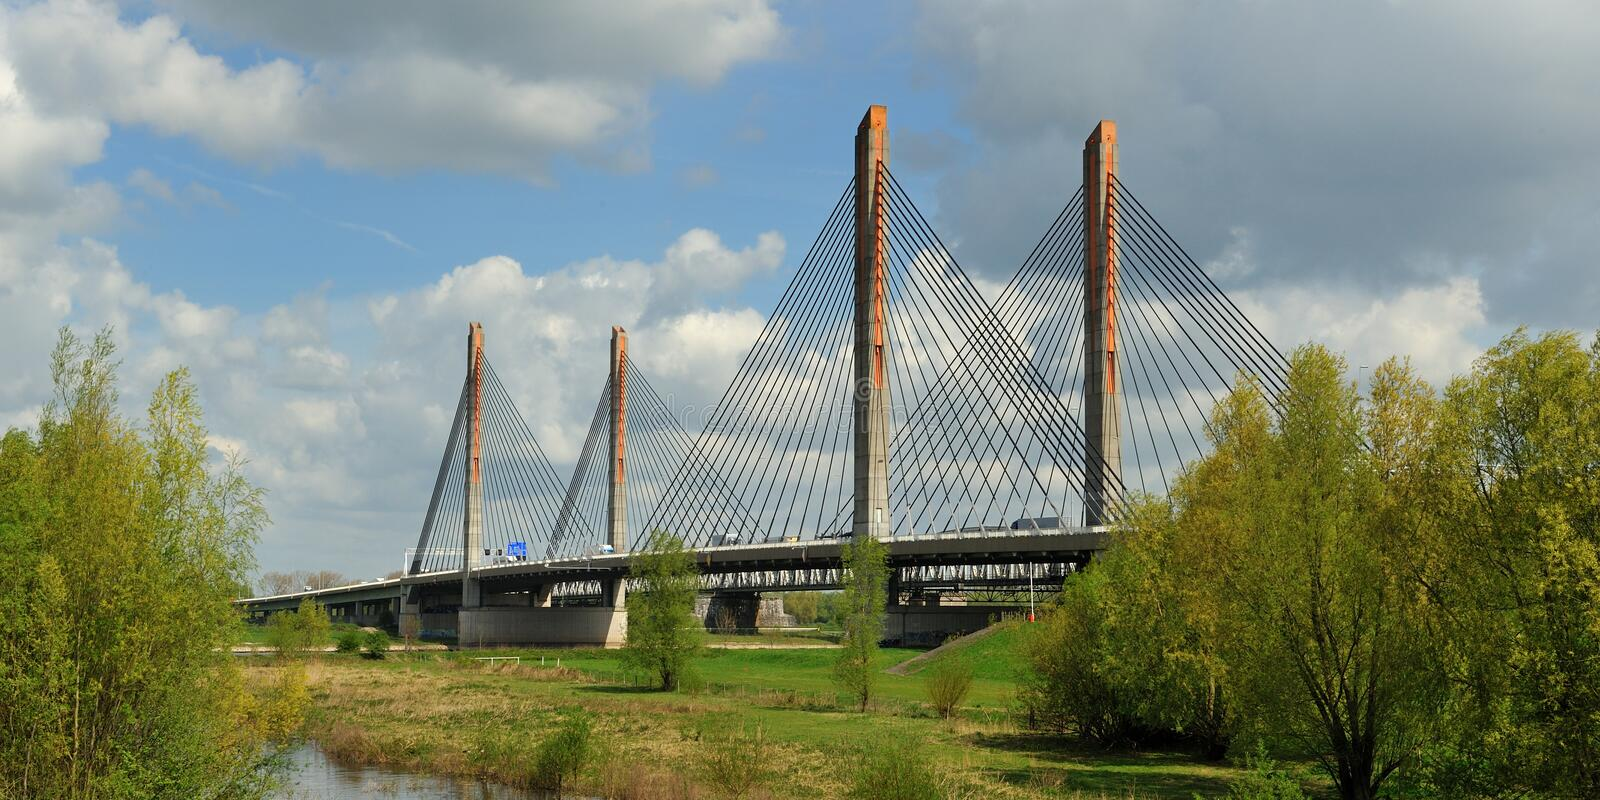 Bridge in Zaltbommel, Netherlands. A cable bridge with the name Martinus Nijhoff in Zaltbommel, the Netherlands royalty free stock images